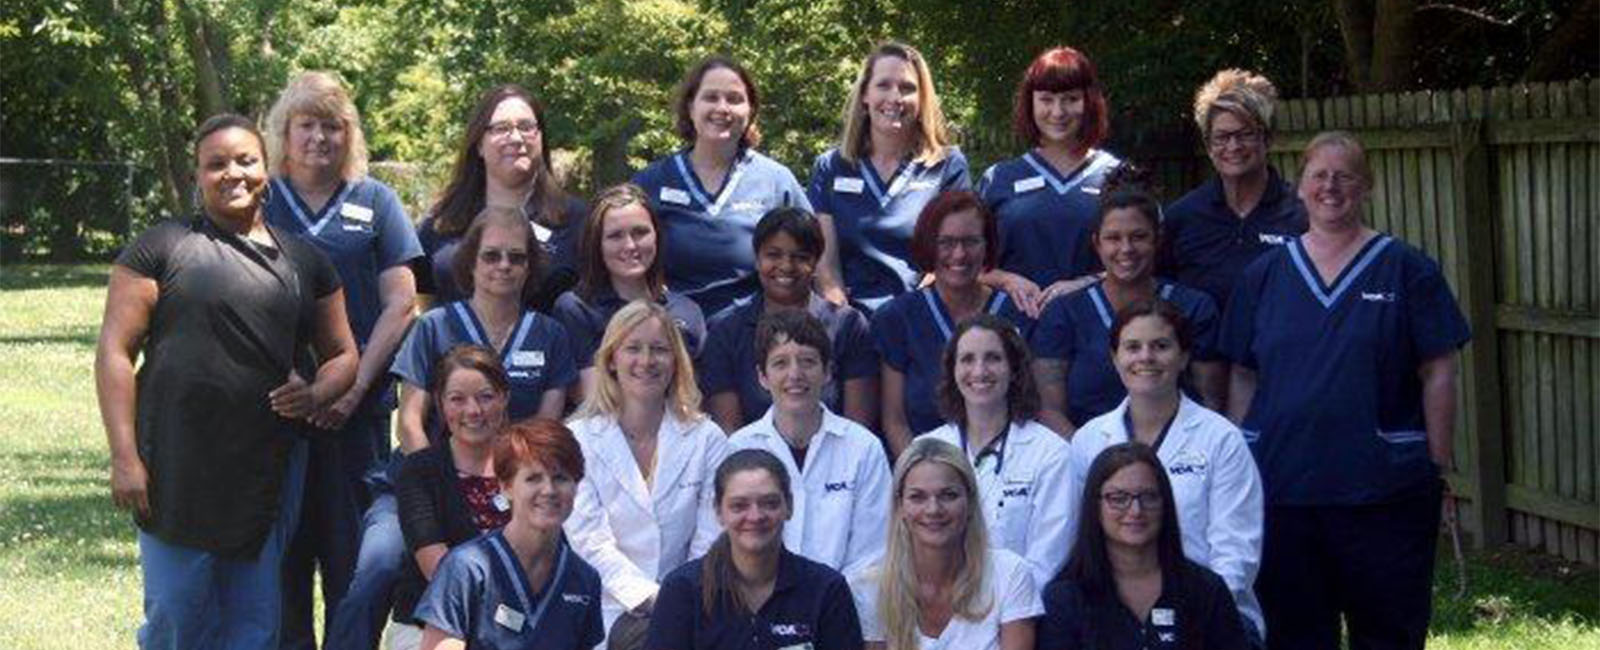 Homepage Team Picture of VCA Boulevard Animal Hospital